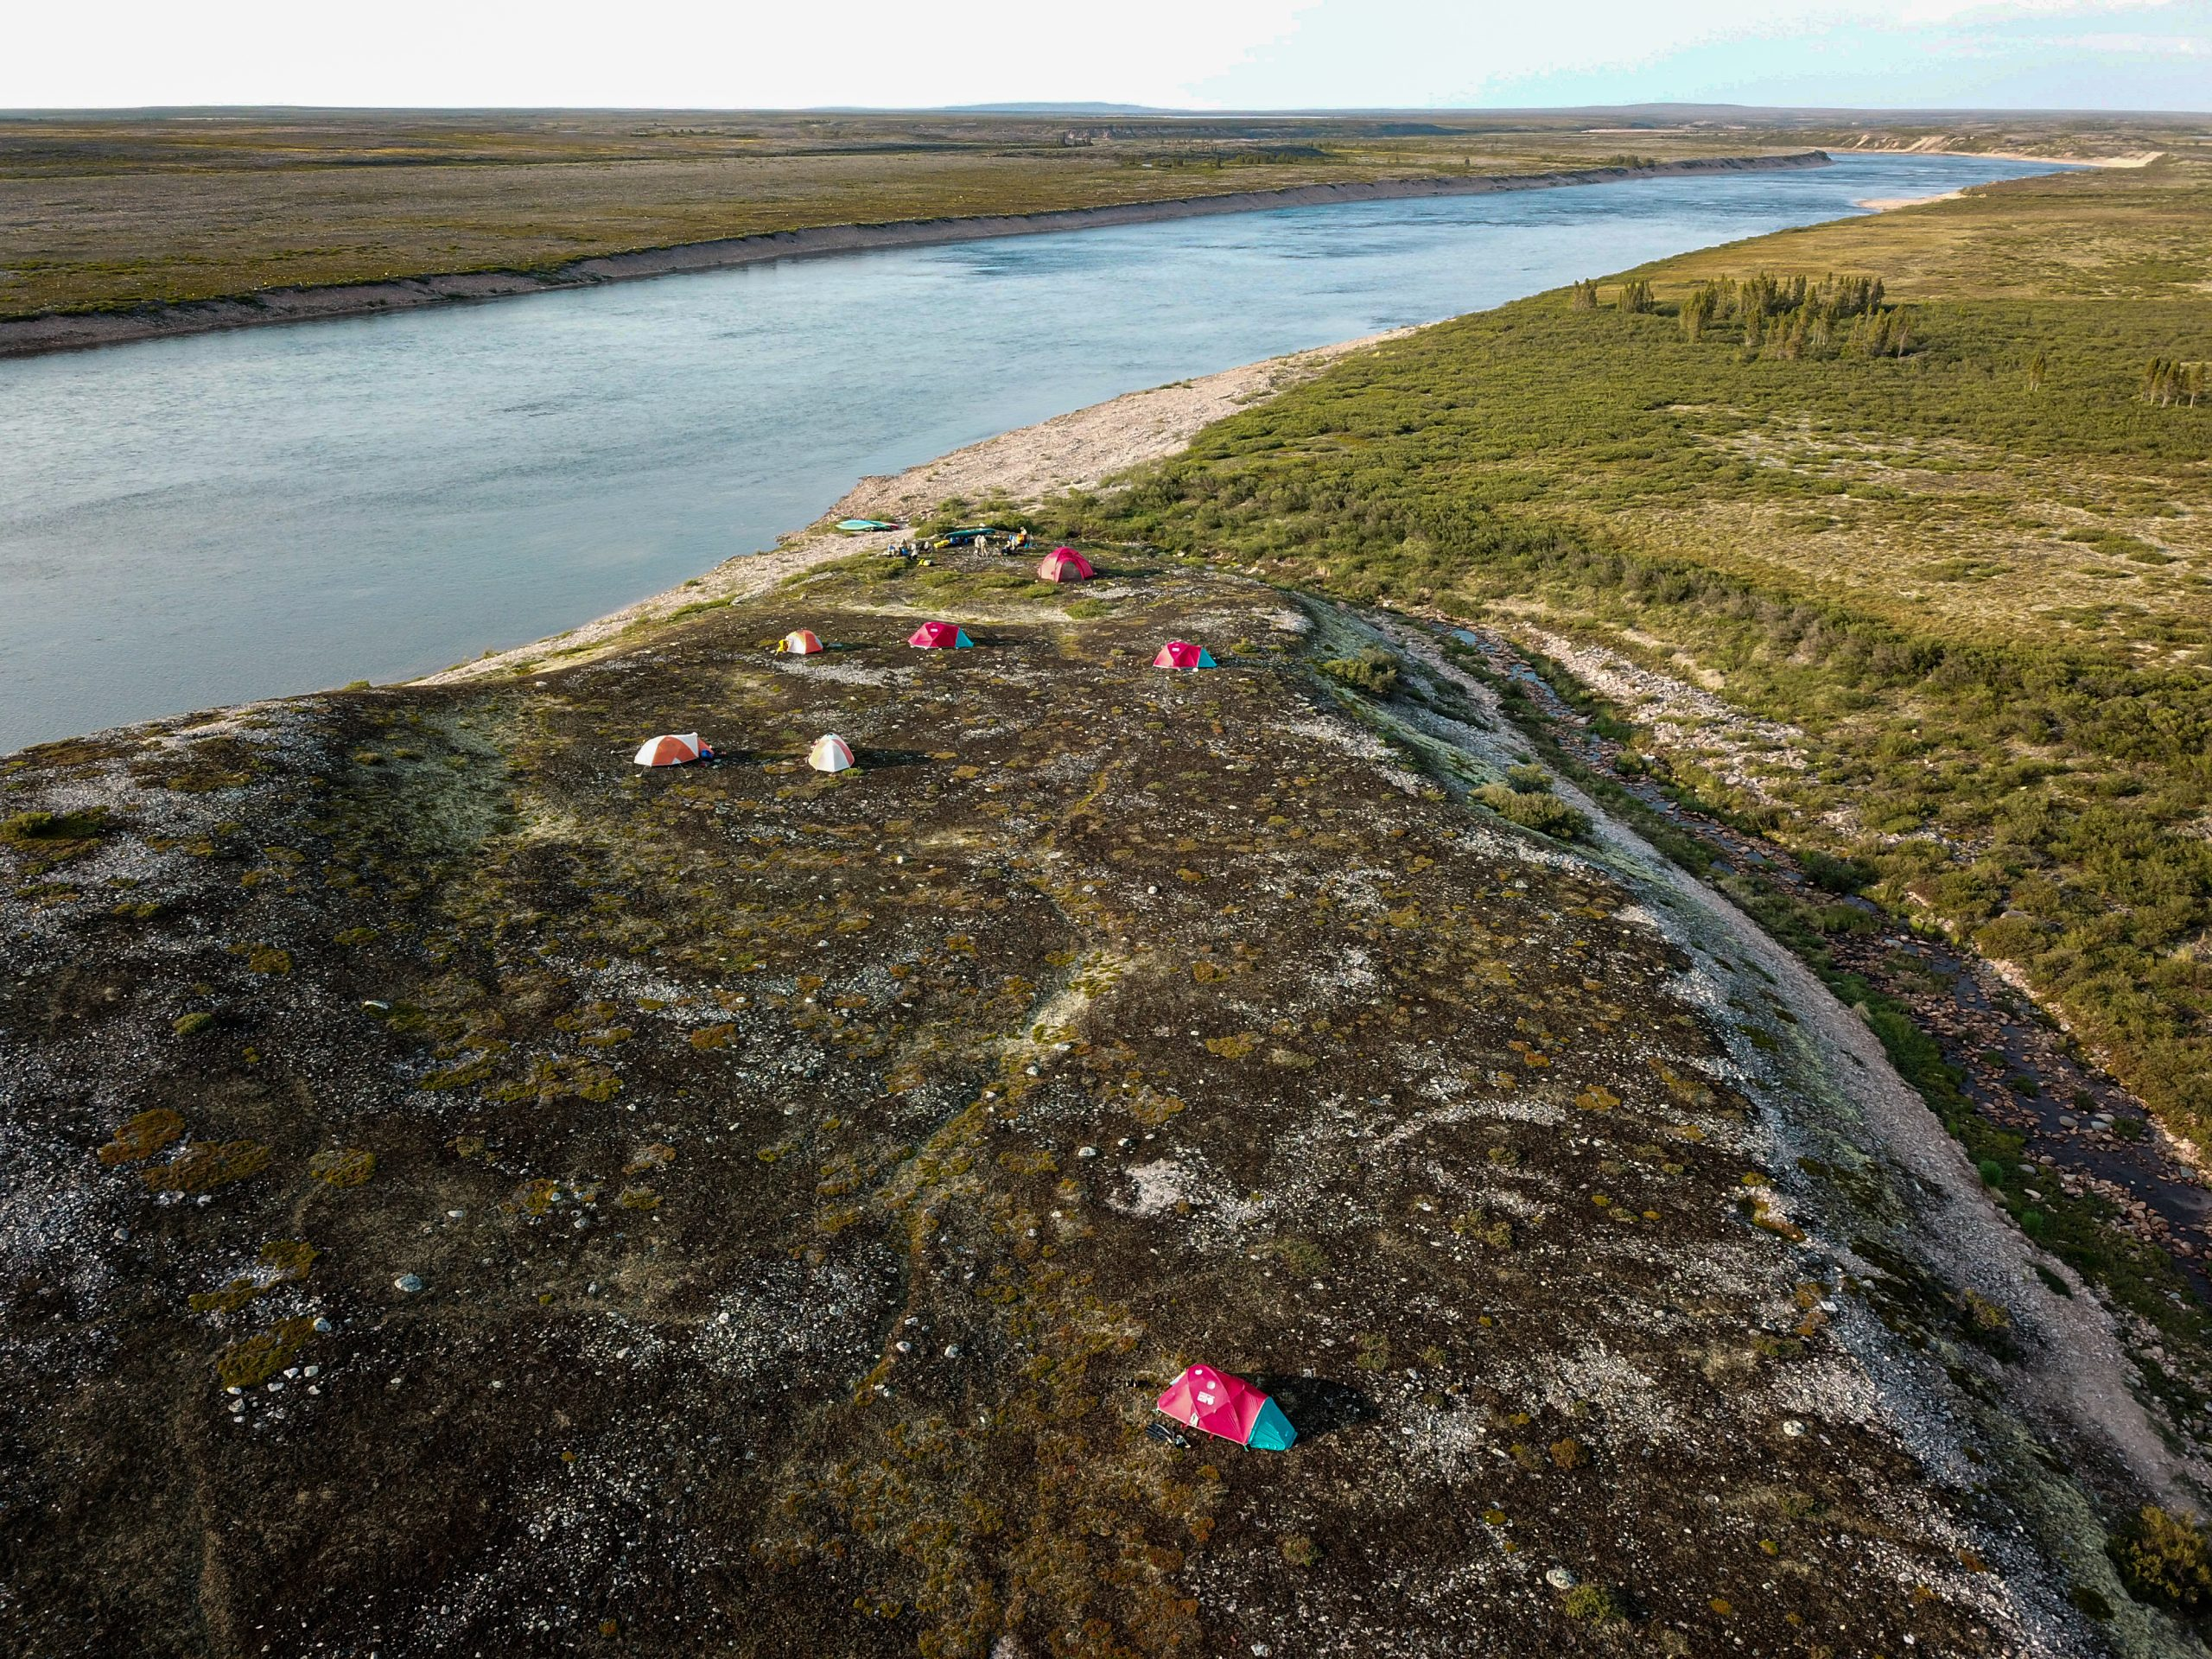 photo from above land with river and tents